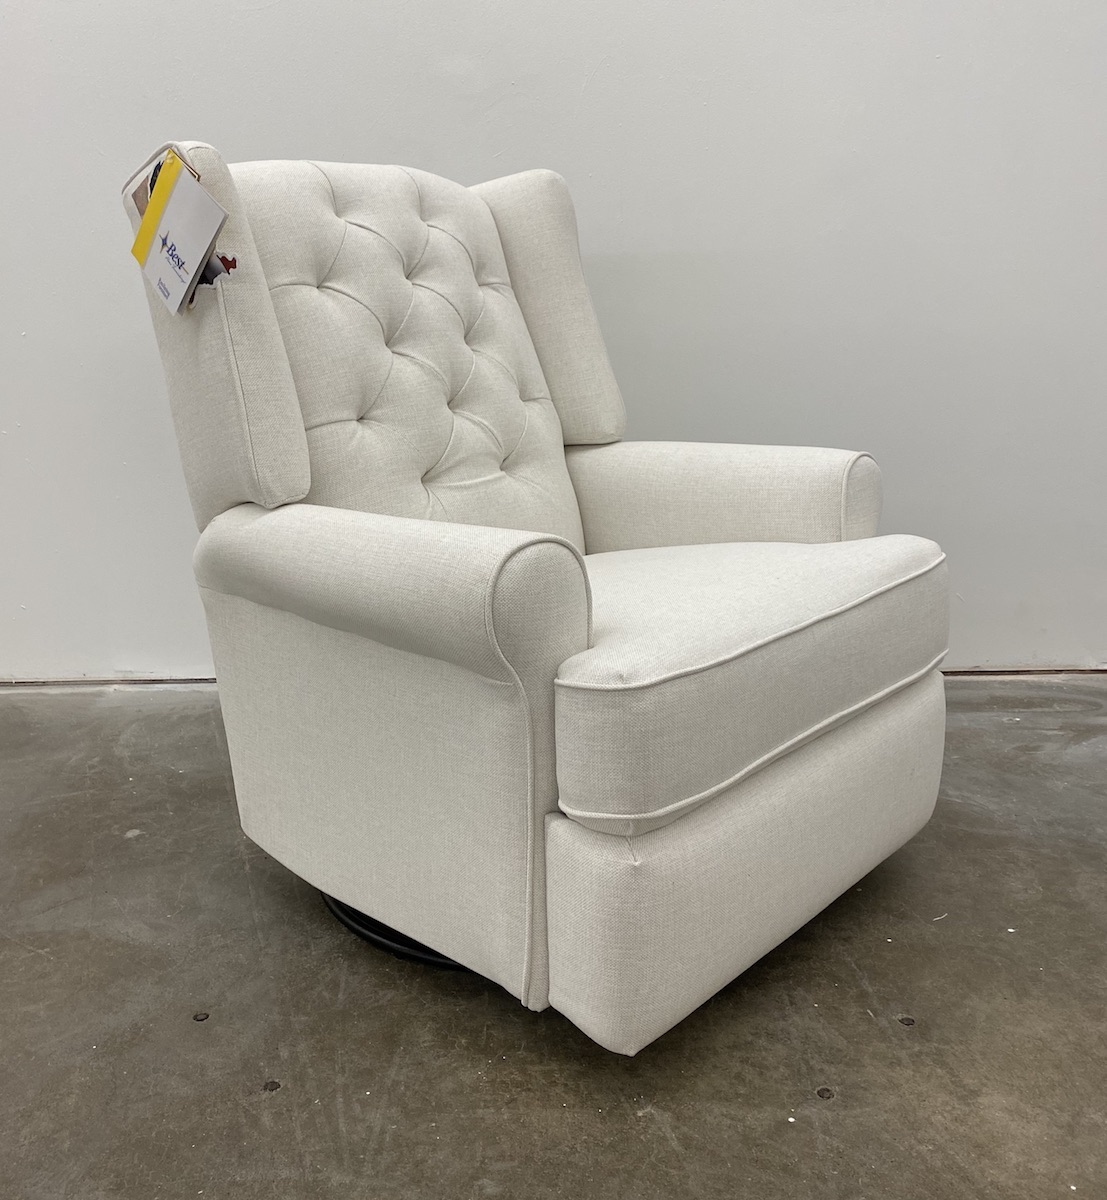 Best Chairs Kendra Tufted Swivel Glider Recliner in Snow